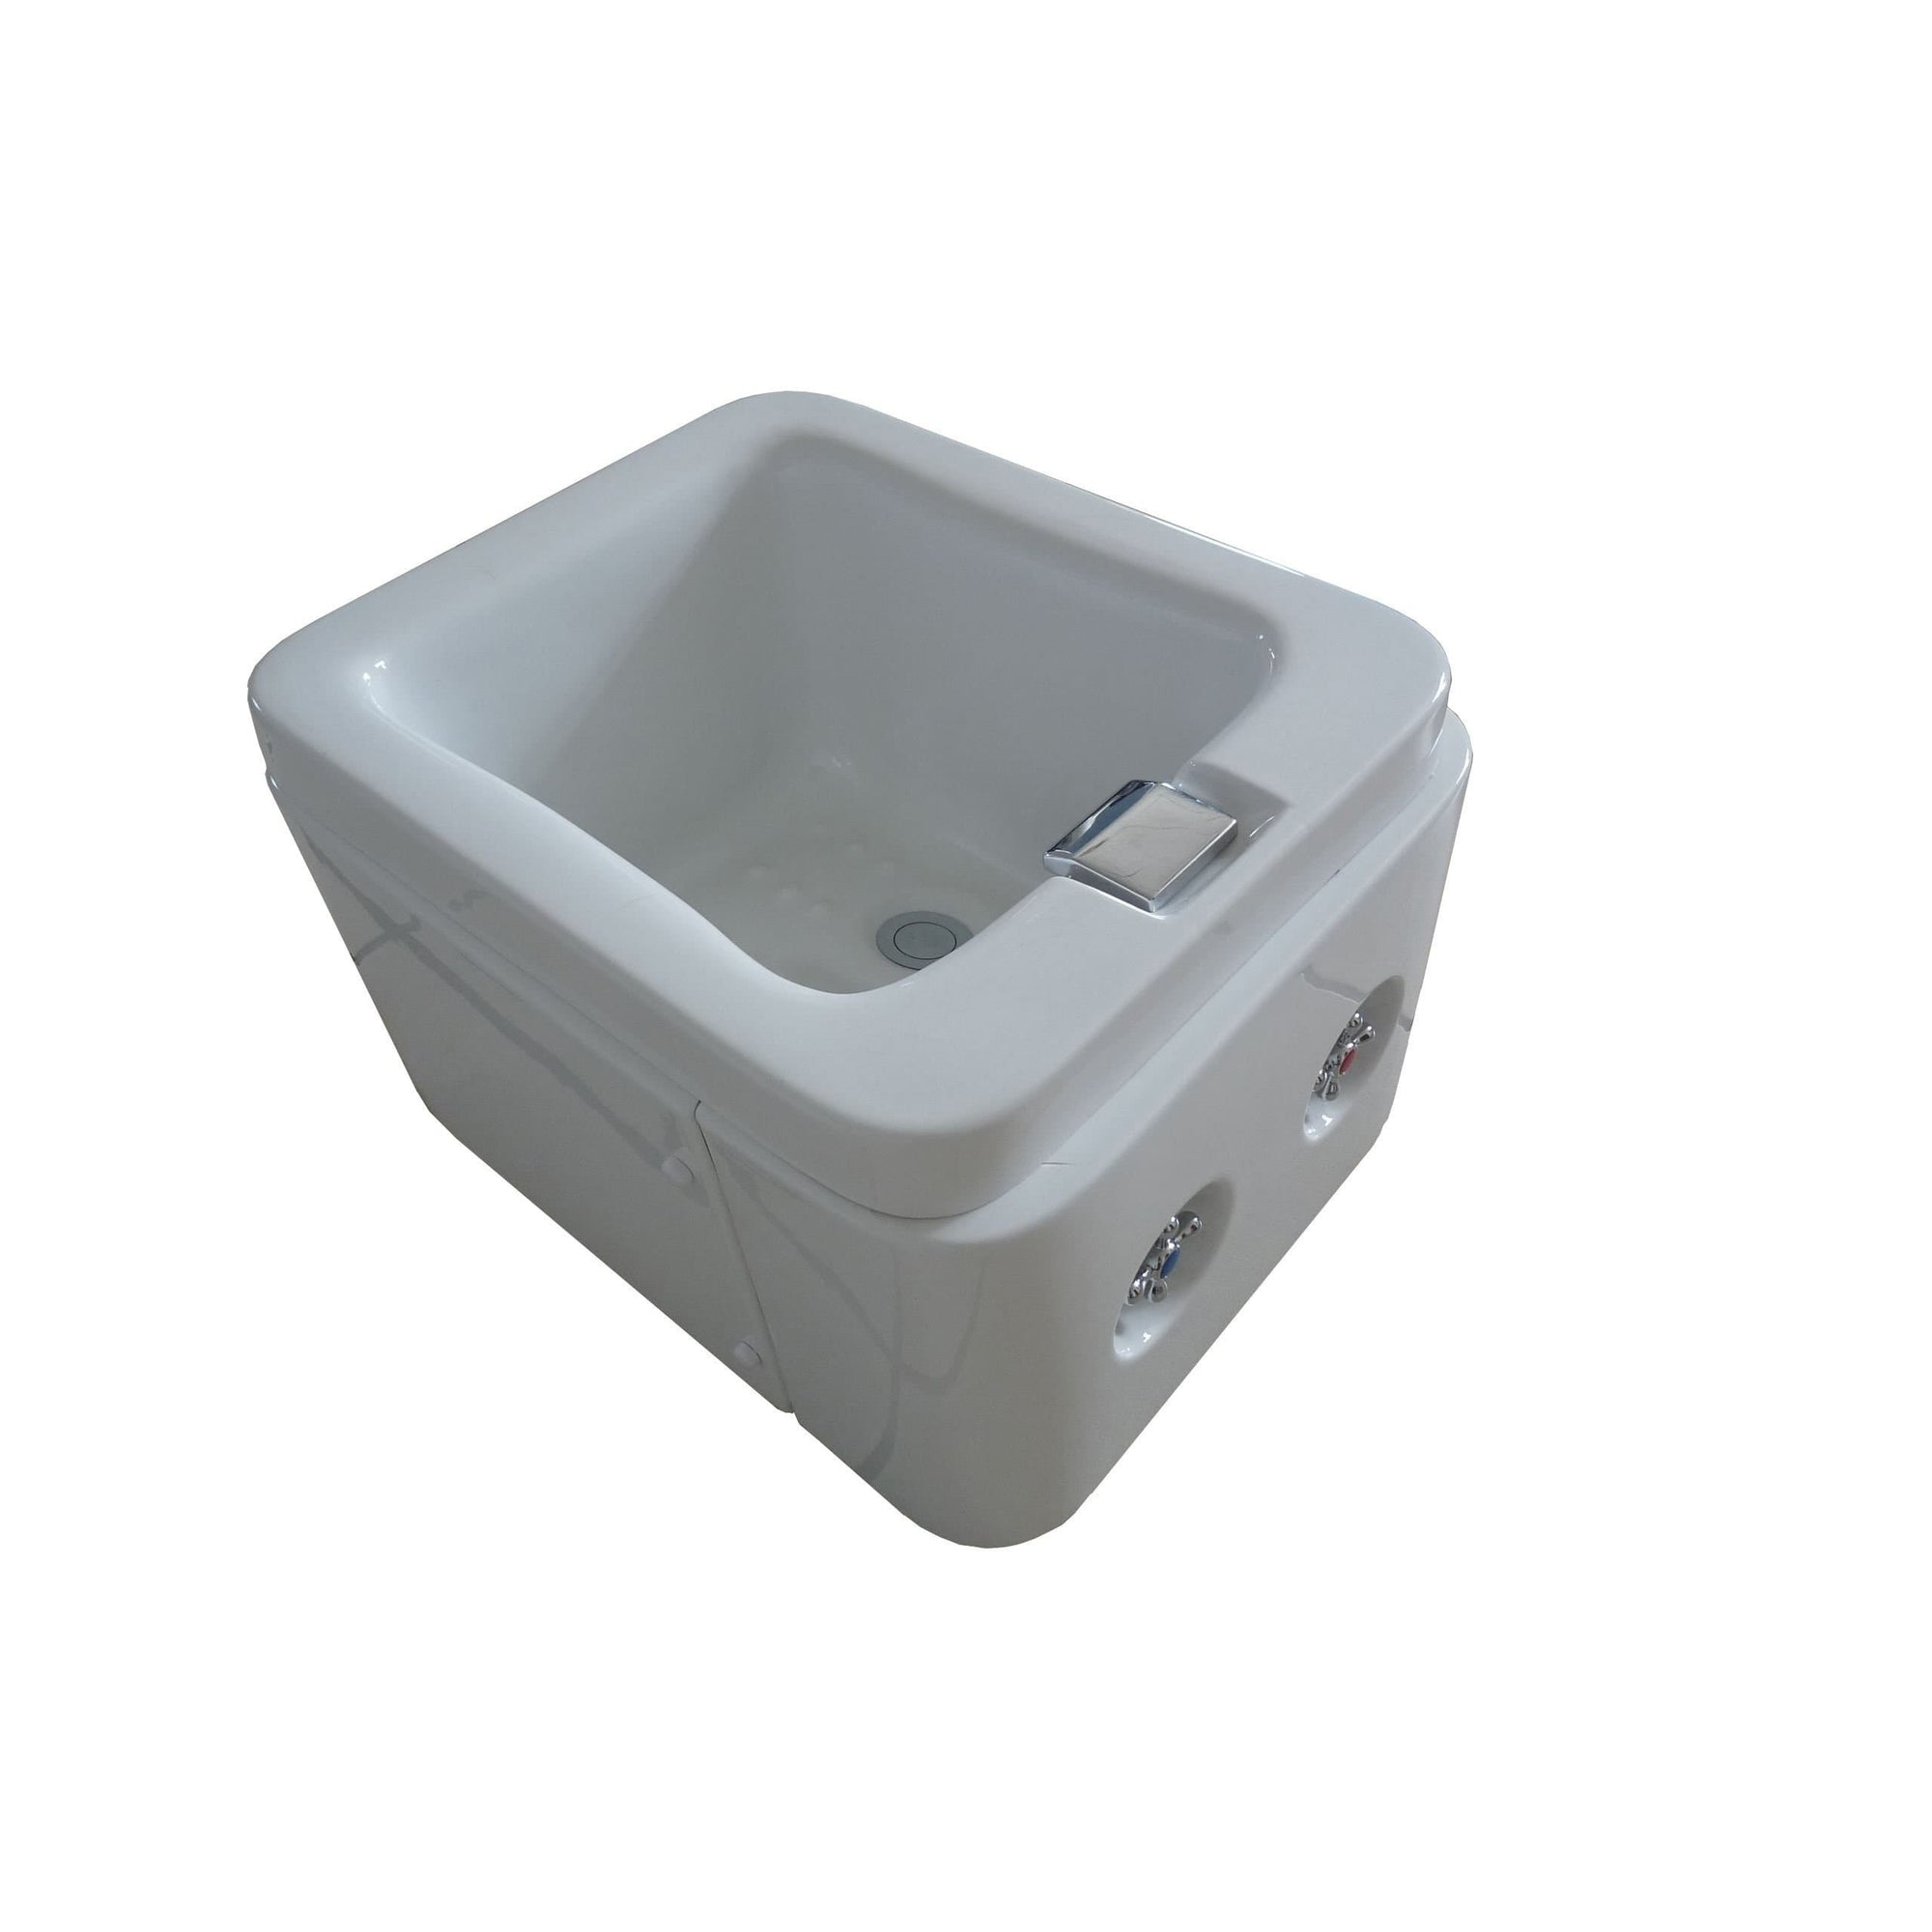 Touch America TouchAmerica Foot Tub Foot Tub - ChairsThatGive